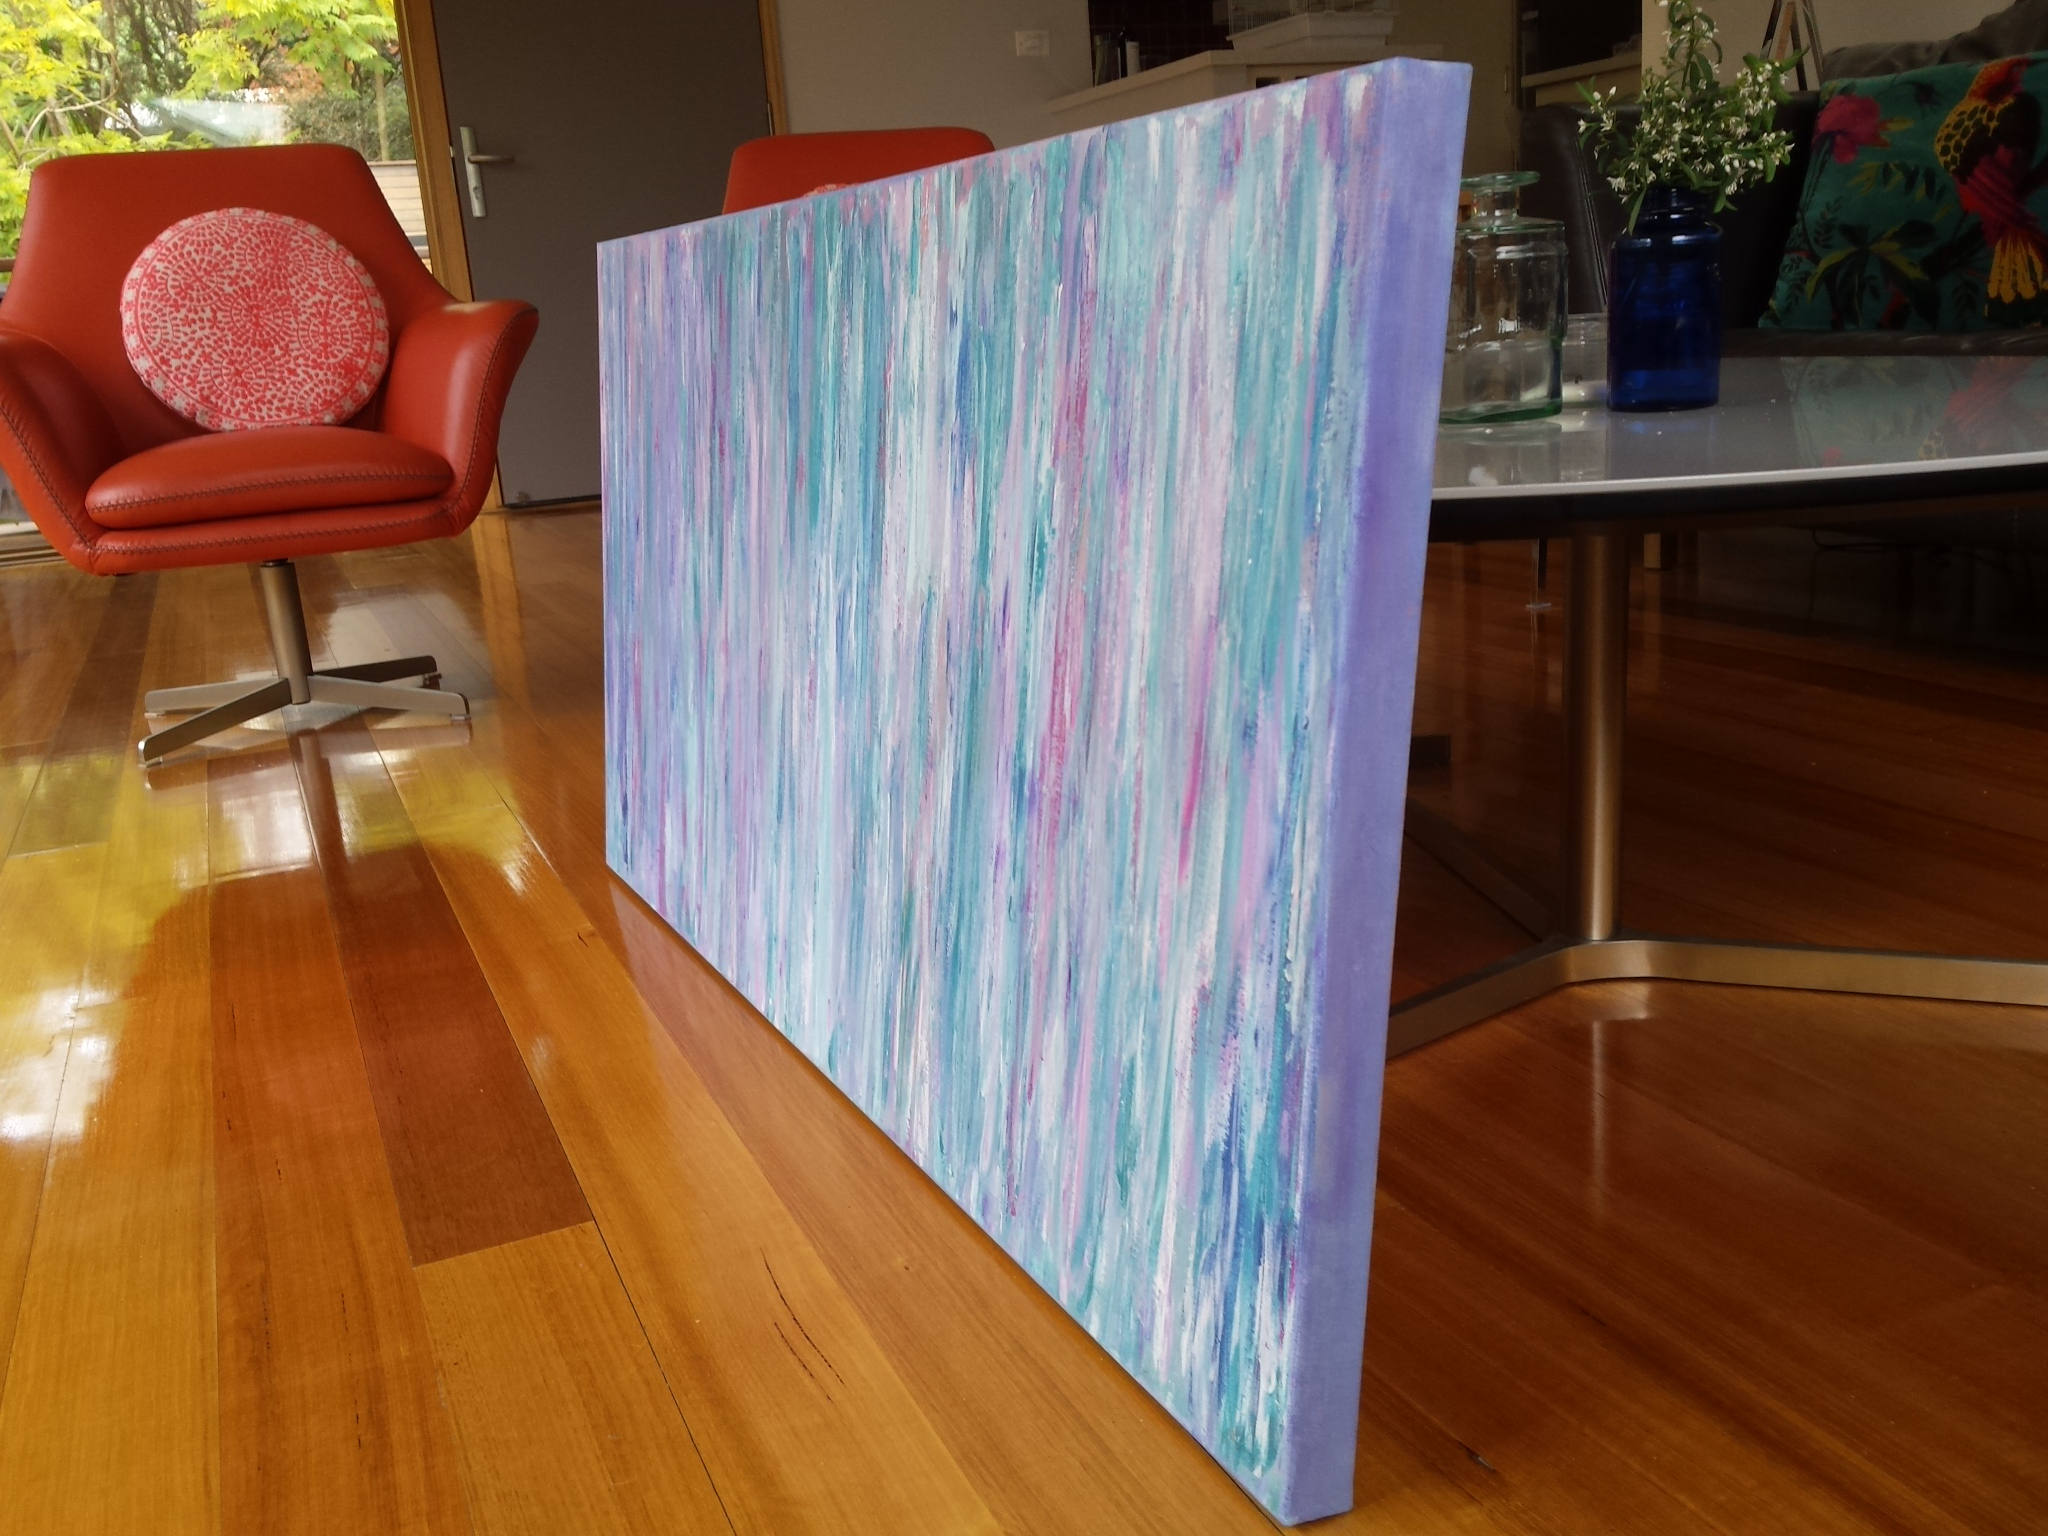 abstract art for the home, Melbourne Australia